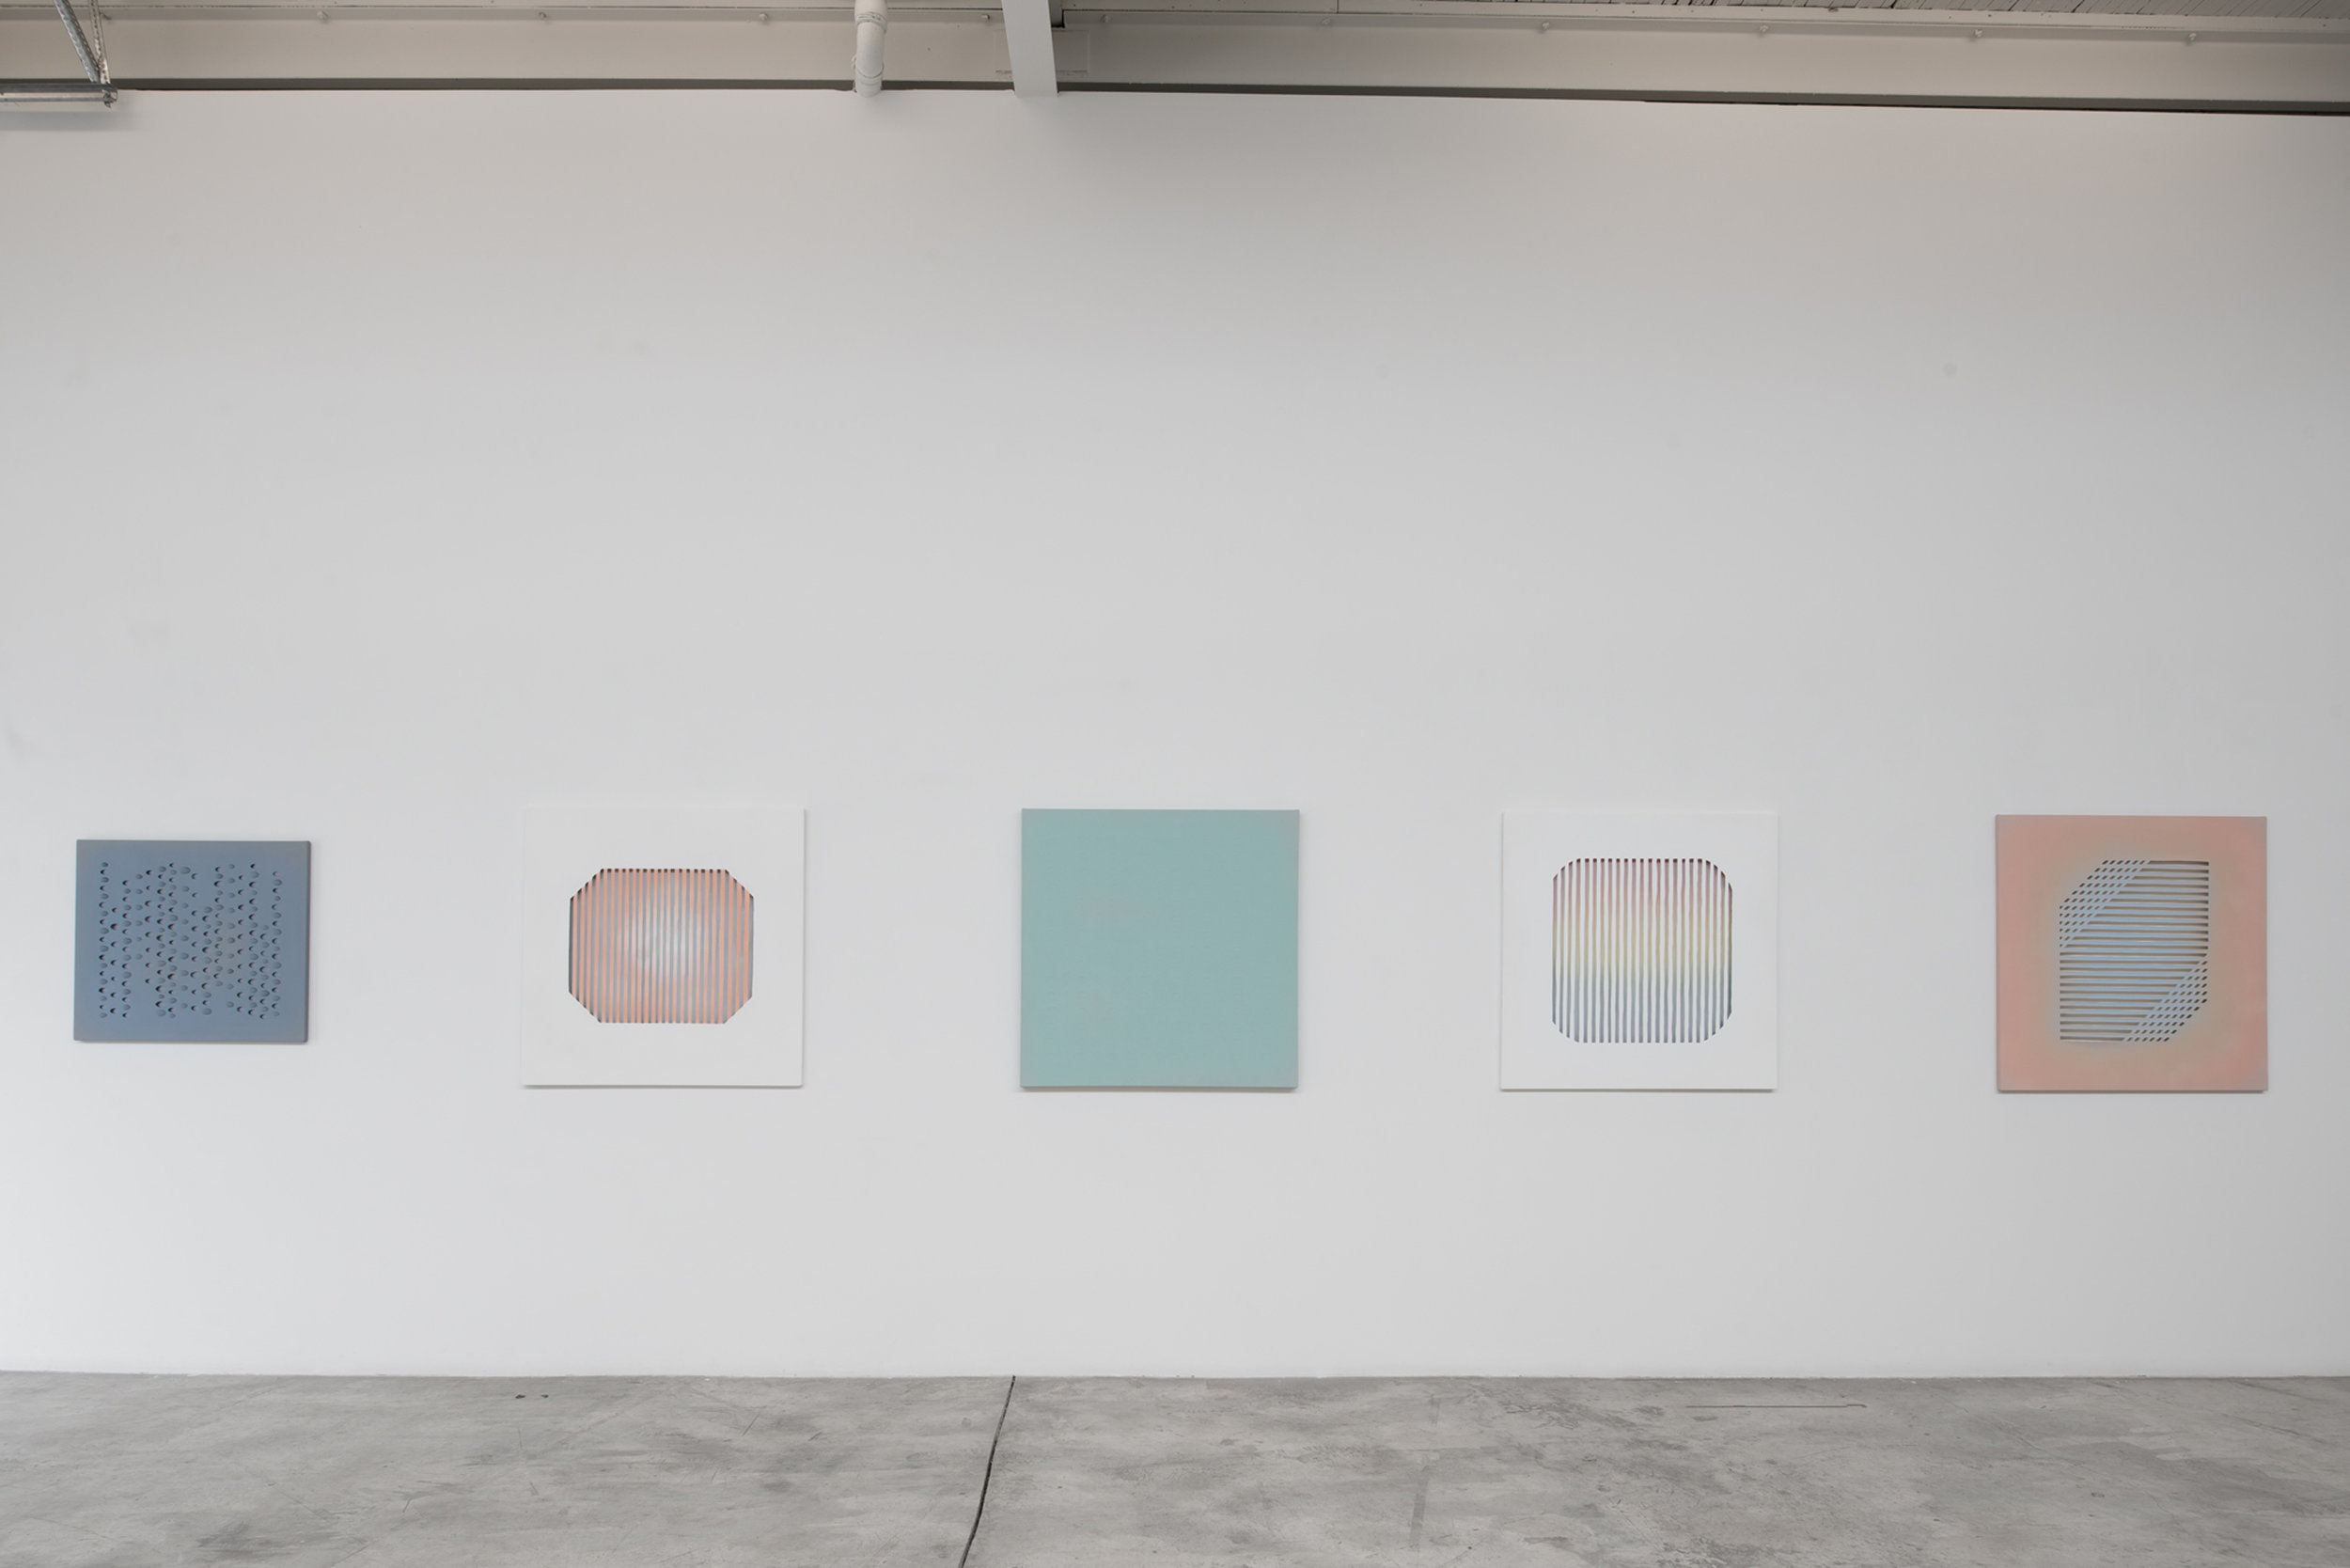 Derek Coulombe, Nestor Krüger, Kristie MacDonald, Janine Miedzik, Haley Uyeda    Installation view at Diaz Contemporary 2016